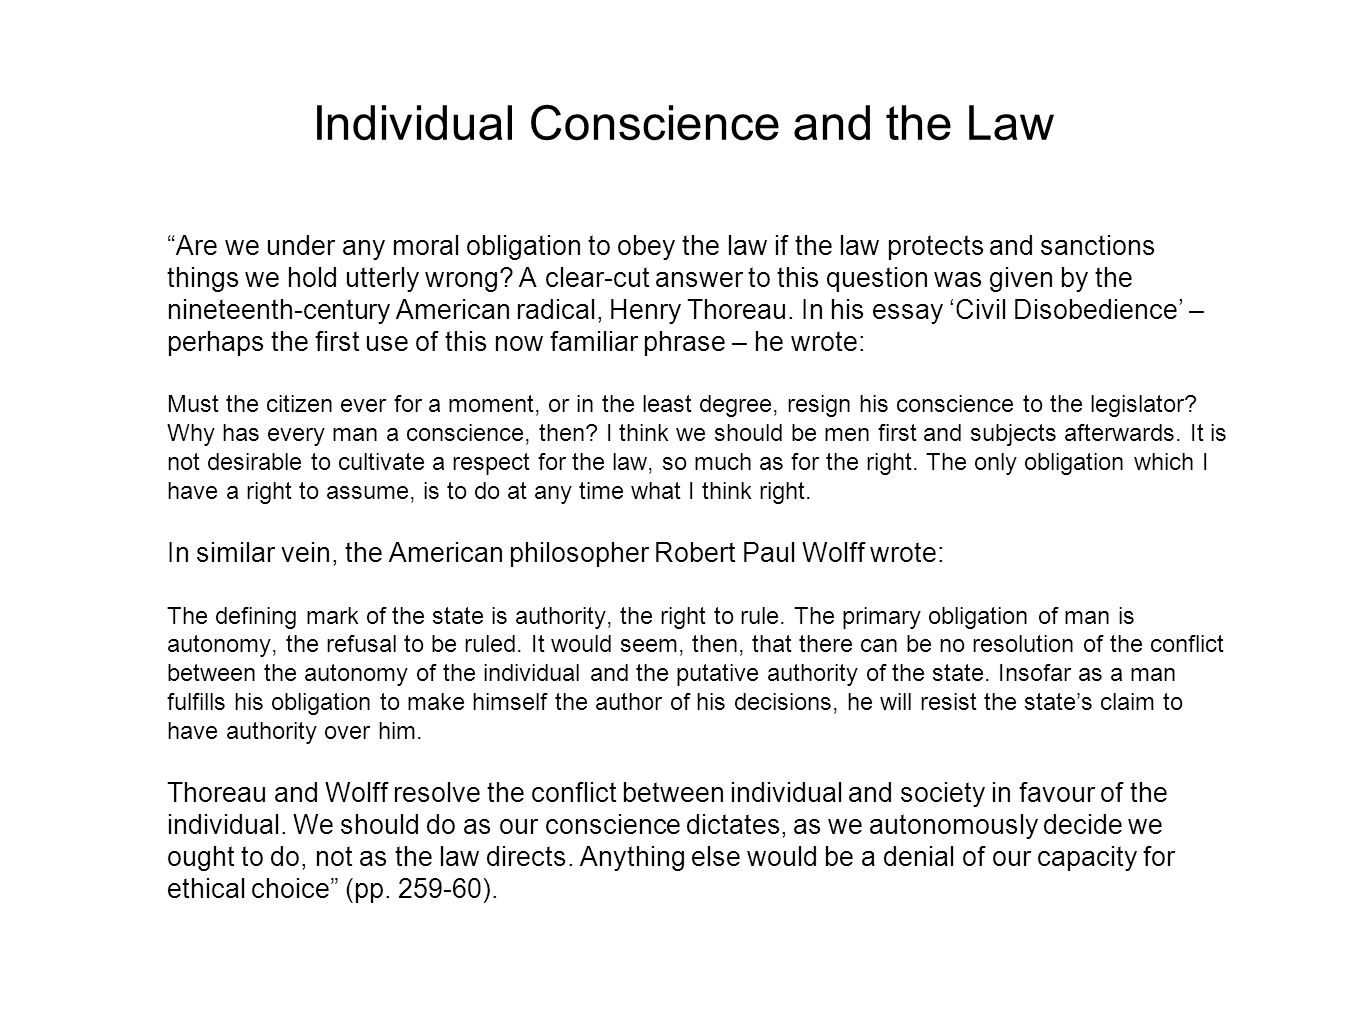 Stolze  Philosophy  Notes On Peter Singer Practical Ethics  Individual Conscience And The Law